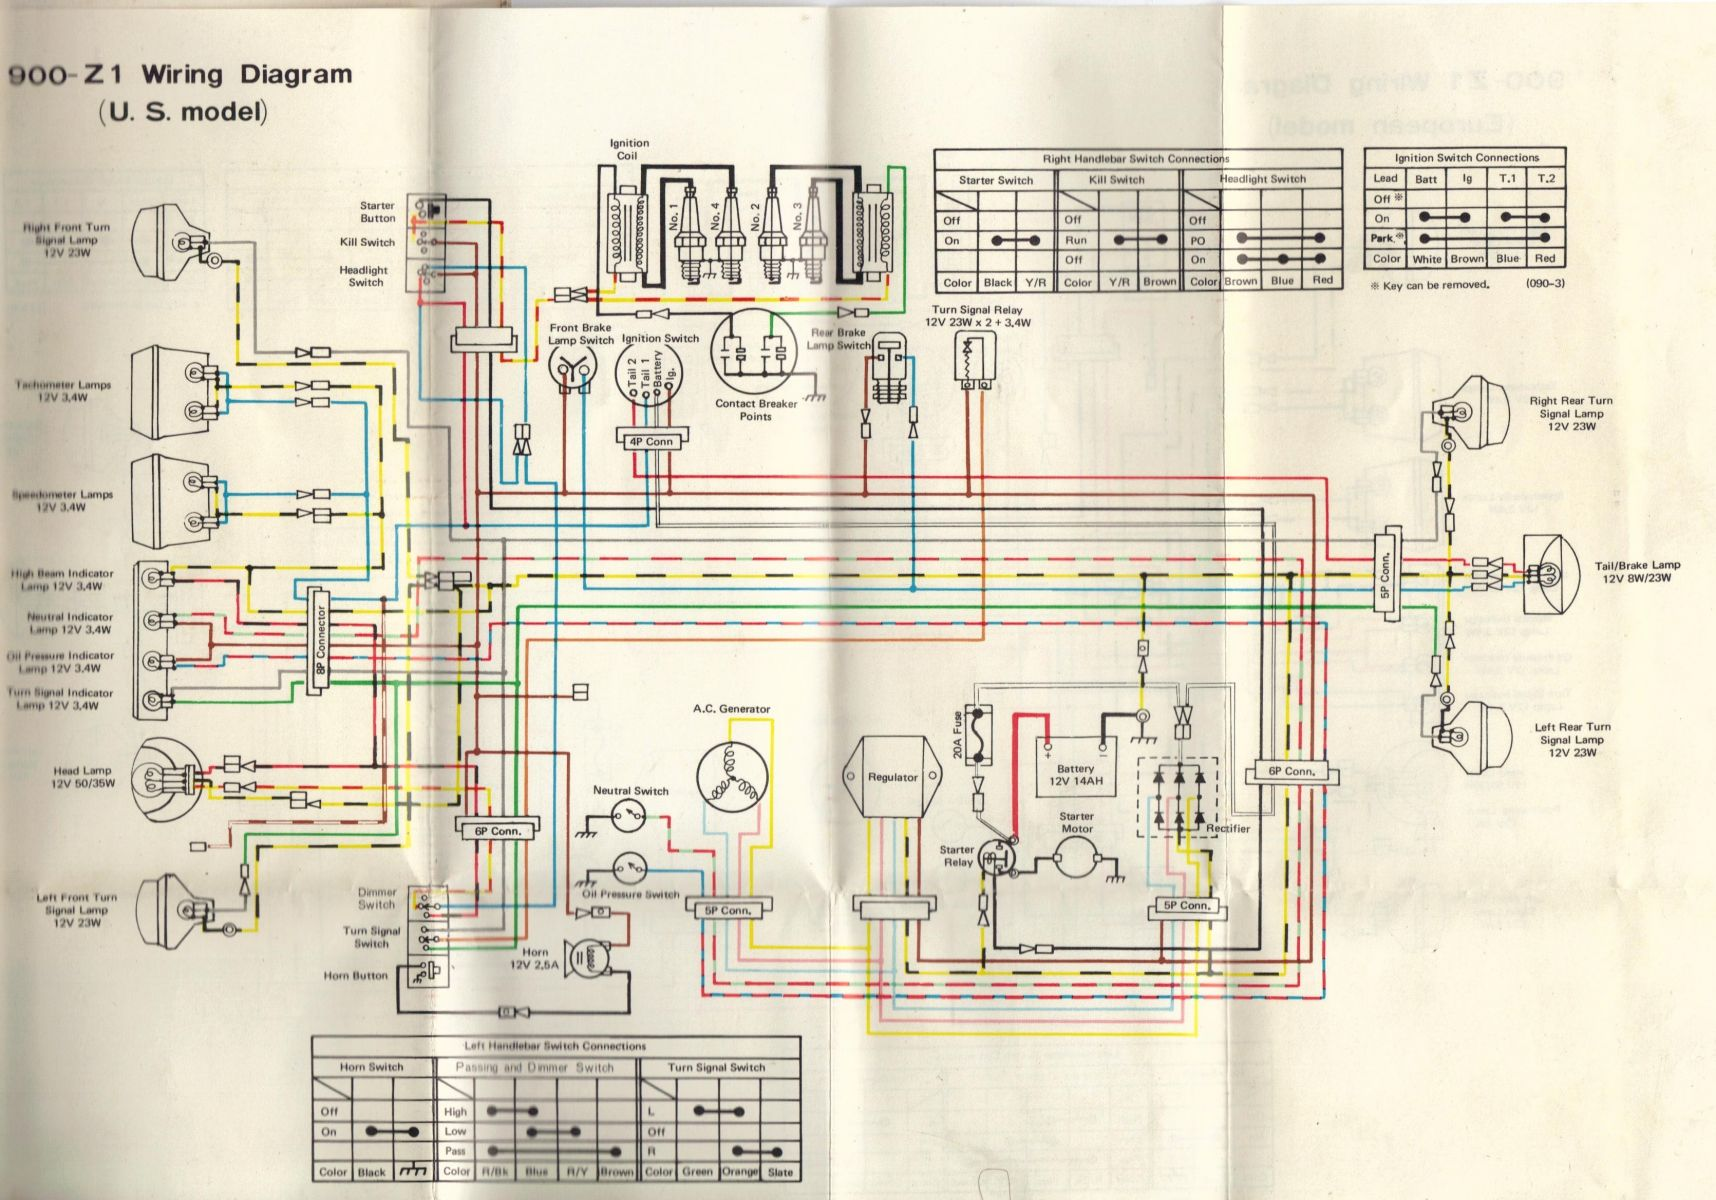 Honda 2 4 Engine Diagram Simple Guide About Wiring 2009 Lincoln Mkz 1975 Z1 900 20amp Fuse Blowes Imediately Kzrider Forum